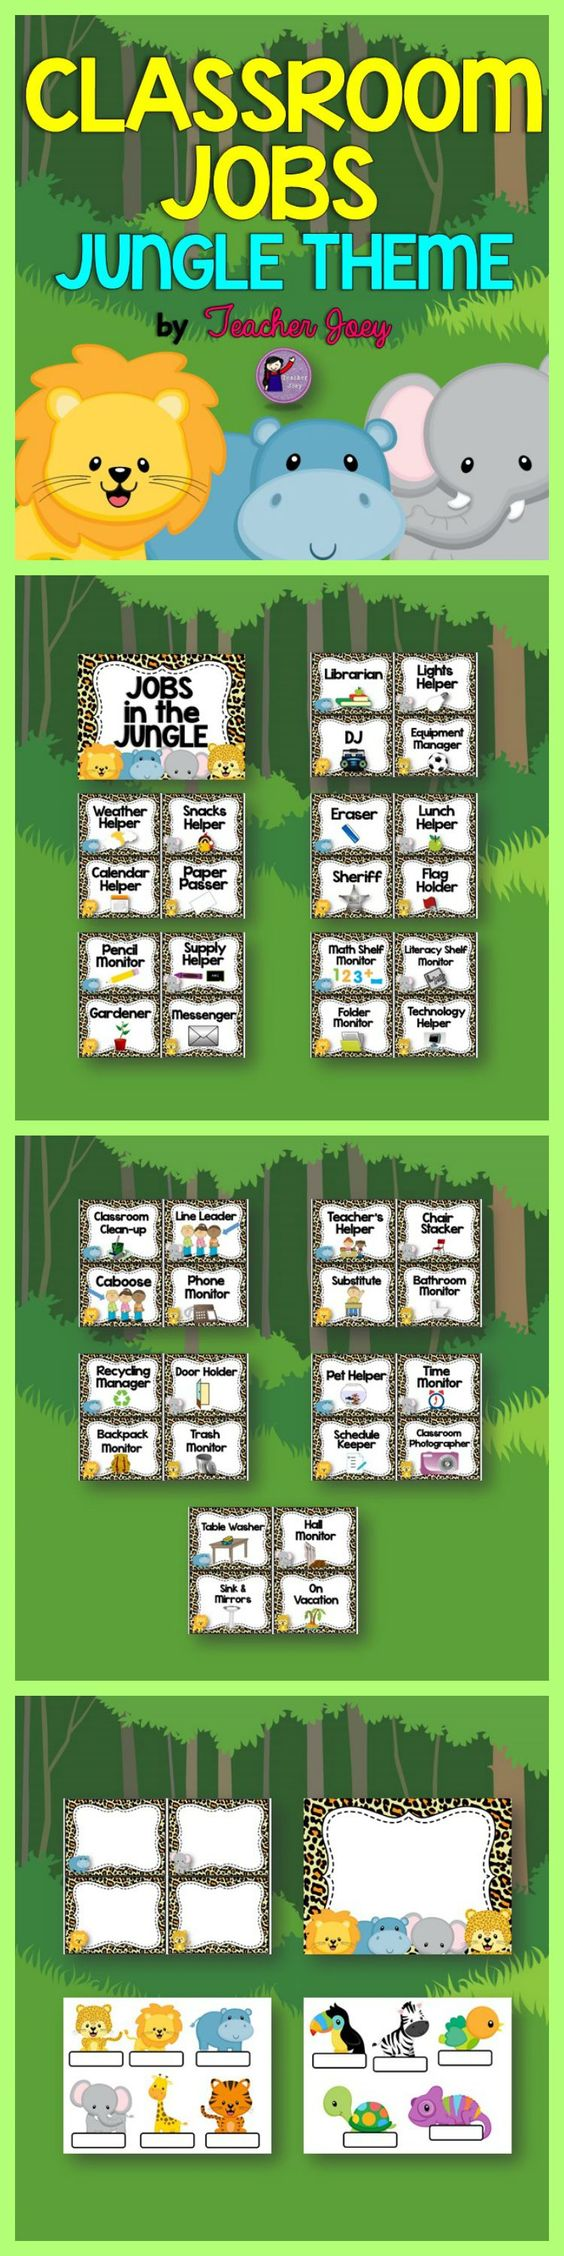 Jungle Theme Classroom Jobs This set includes 40 classroom job labels for your Jungle-Themed classroom!  Please see the preview!  I also included a ppt file with 4 pages of templates for your customization. Just insert text boxes and type in your desired text!